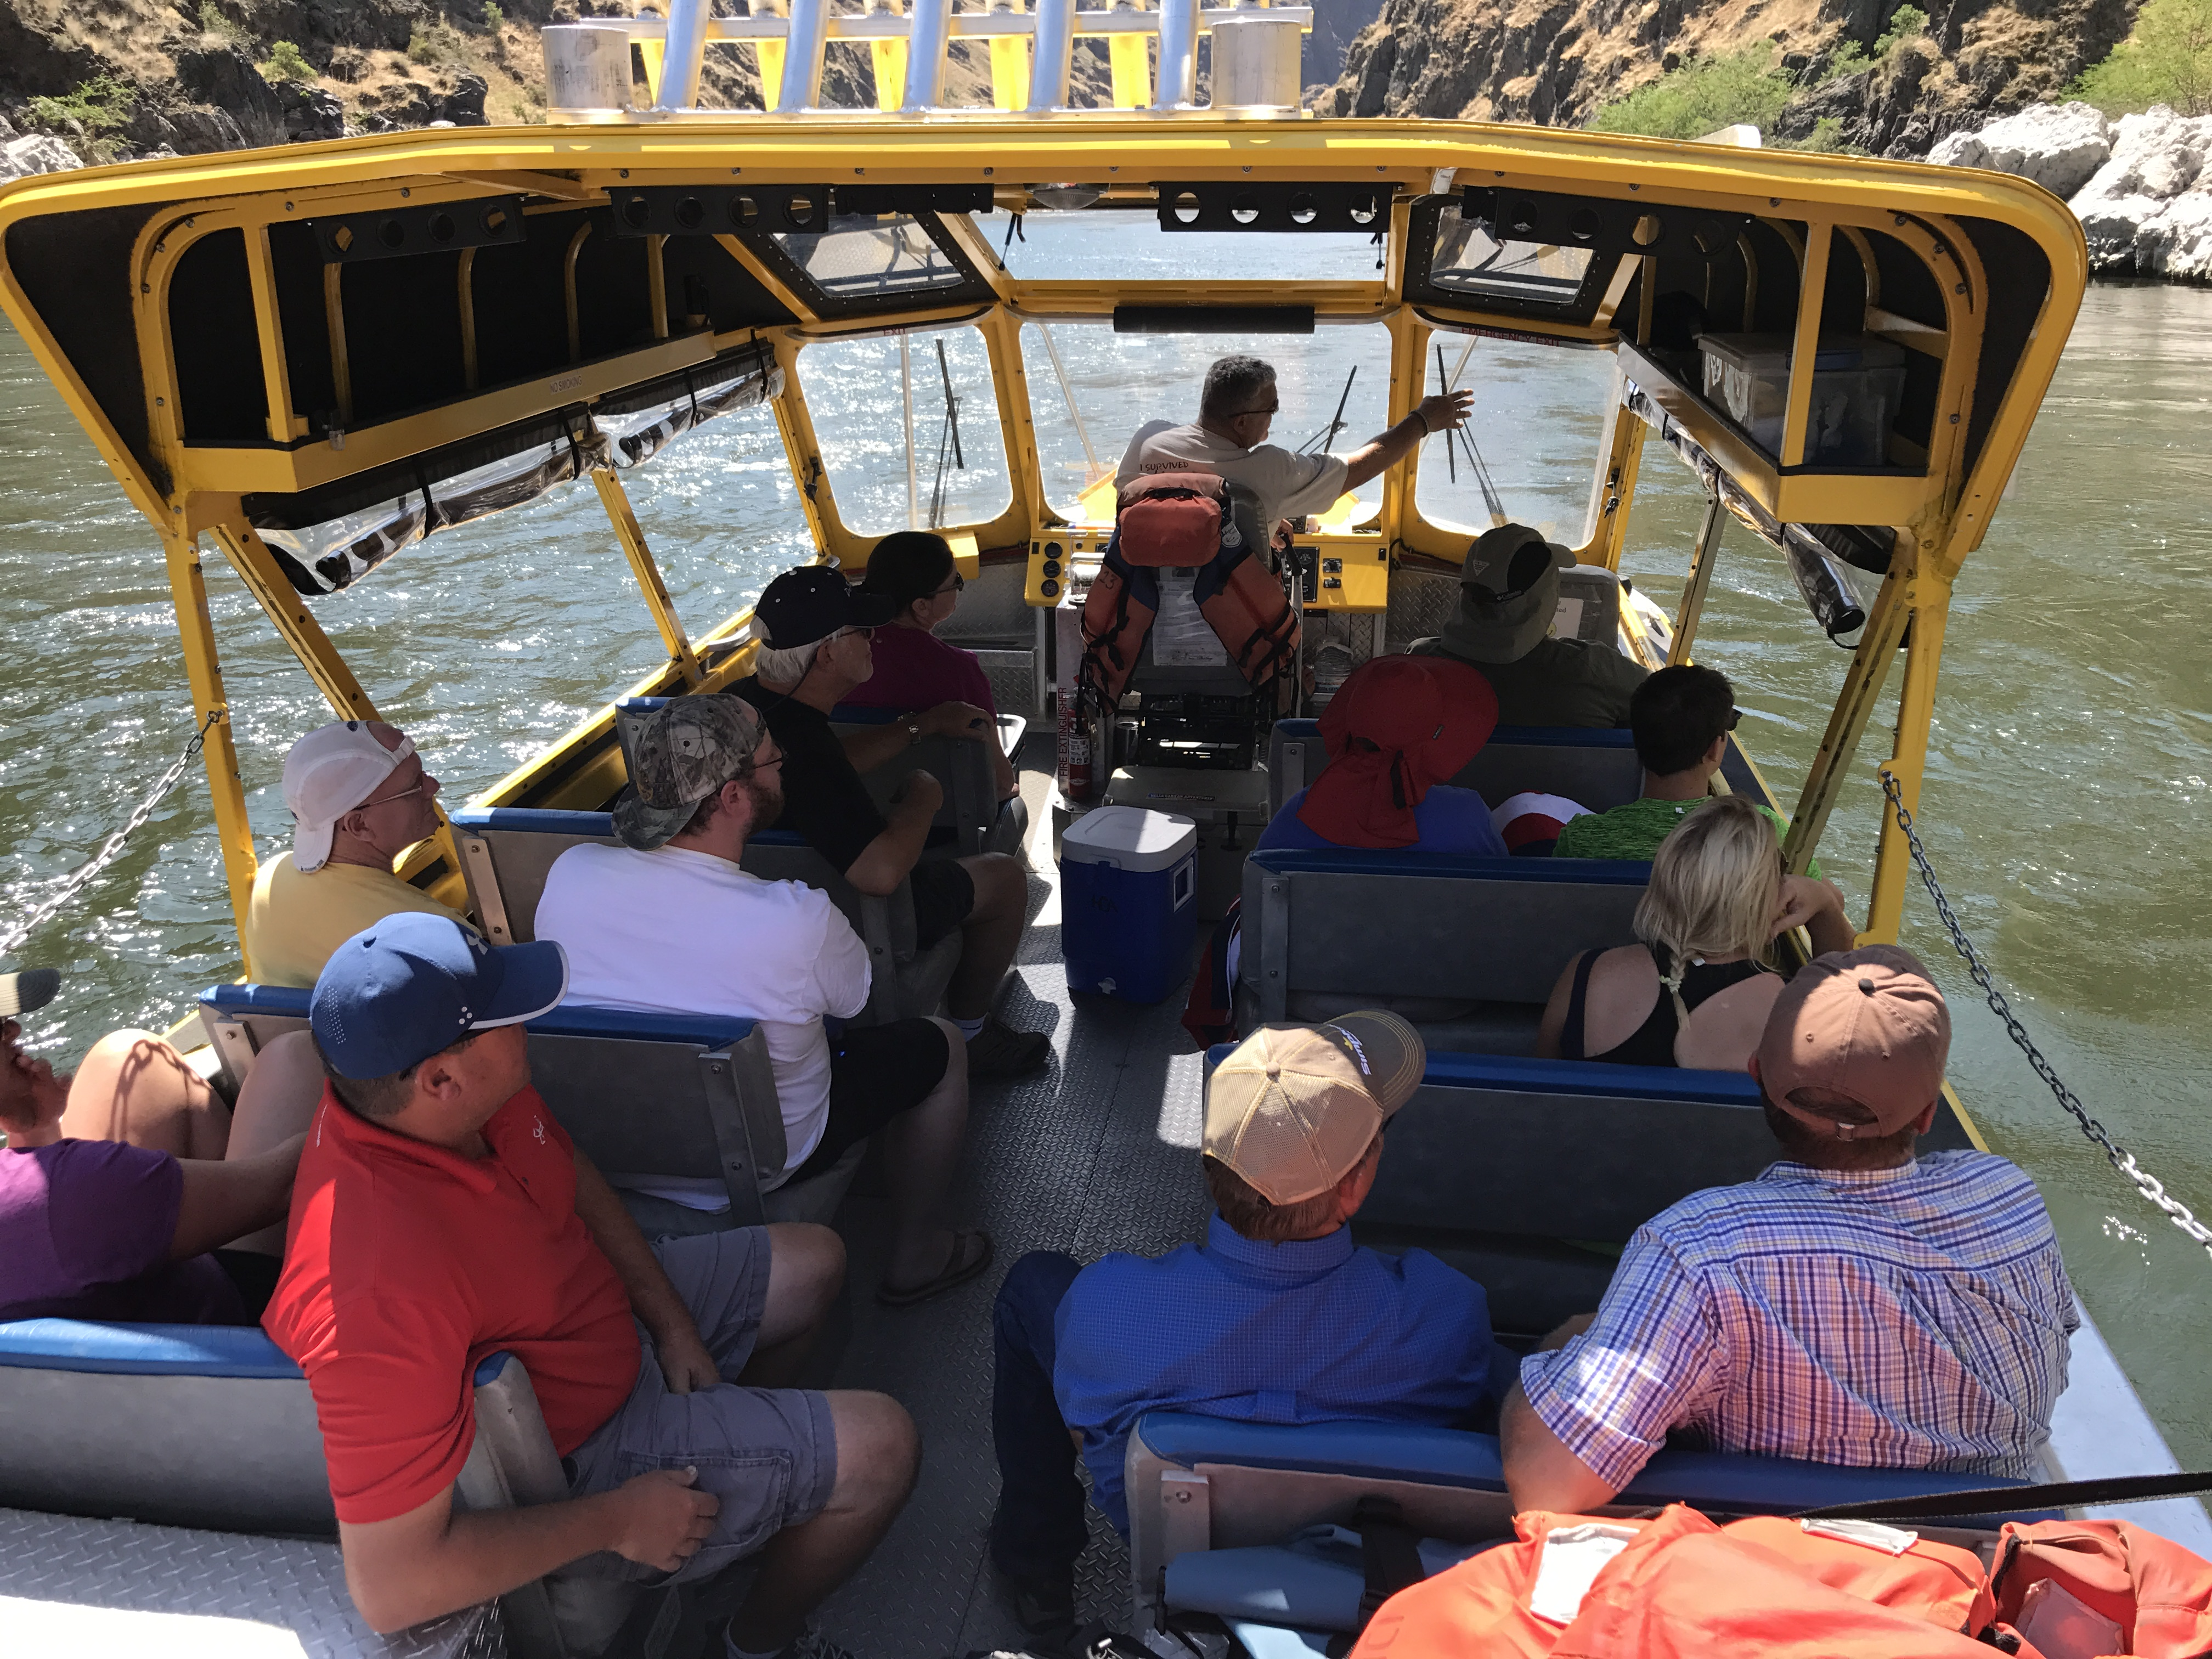 Jet boat trips offer the opportunity to travel upriver or downriver as needed to your destination.